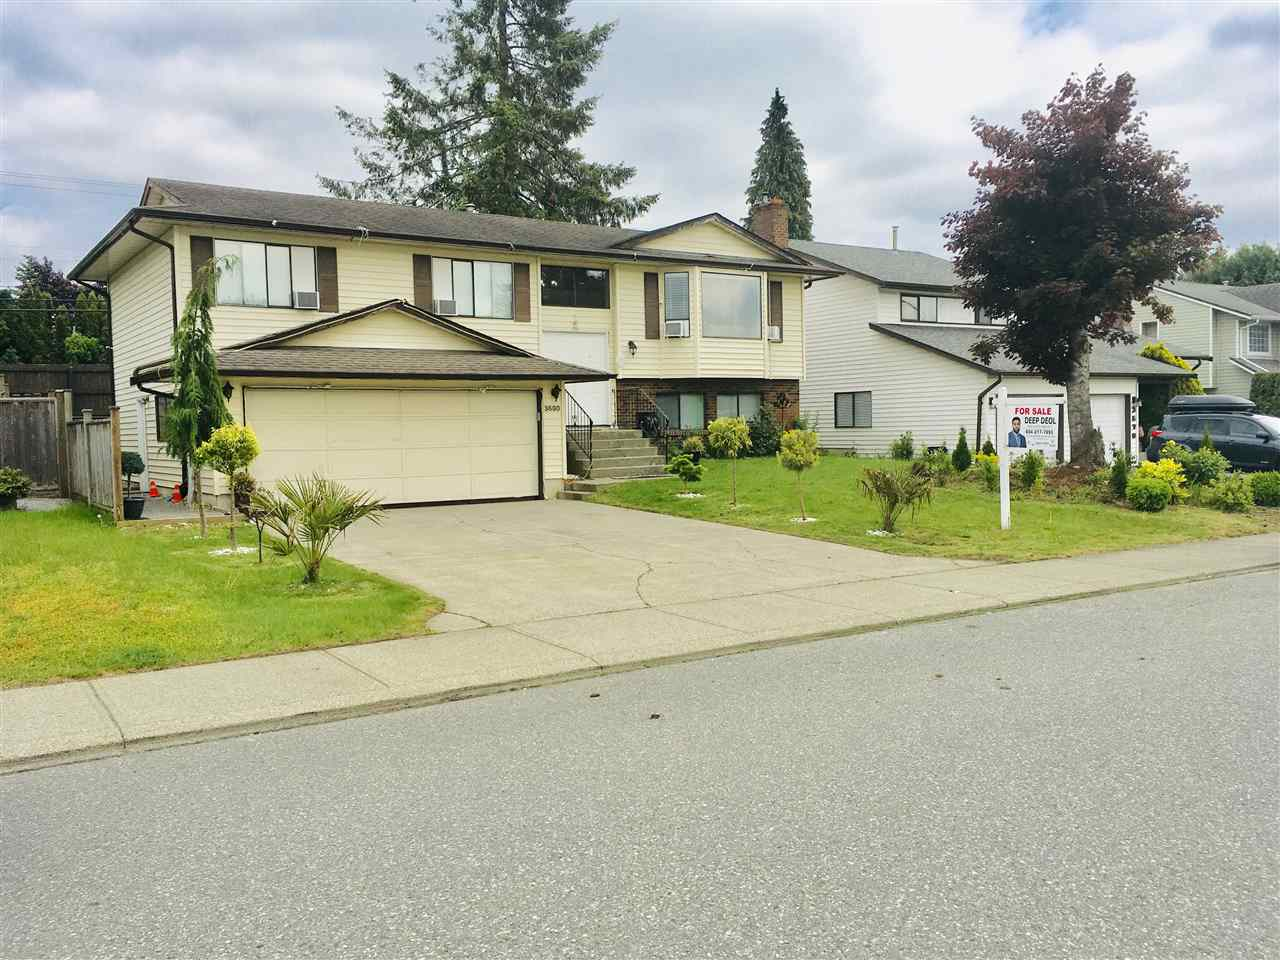 Removed: 3680 Nanaimo Crescent, Abbotsford, BC - Removed on 2019-07-26 05:18:27